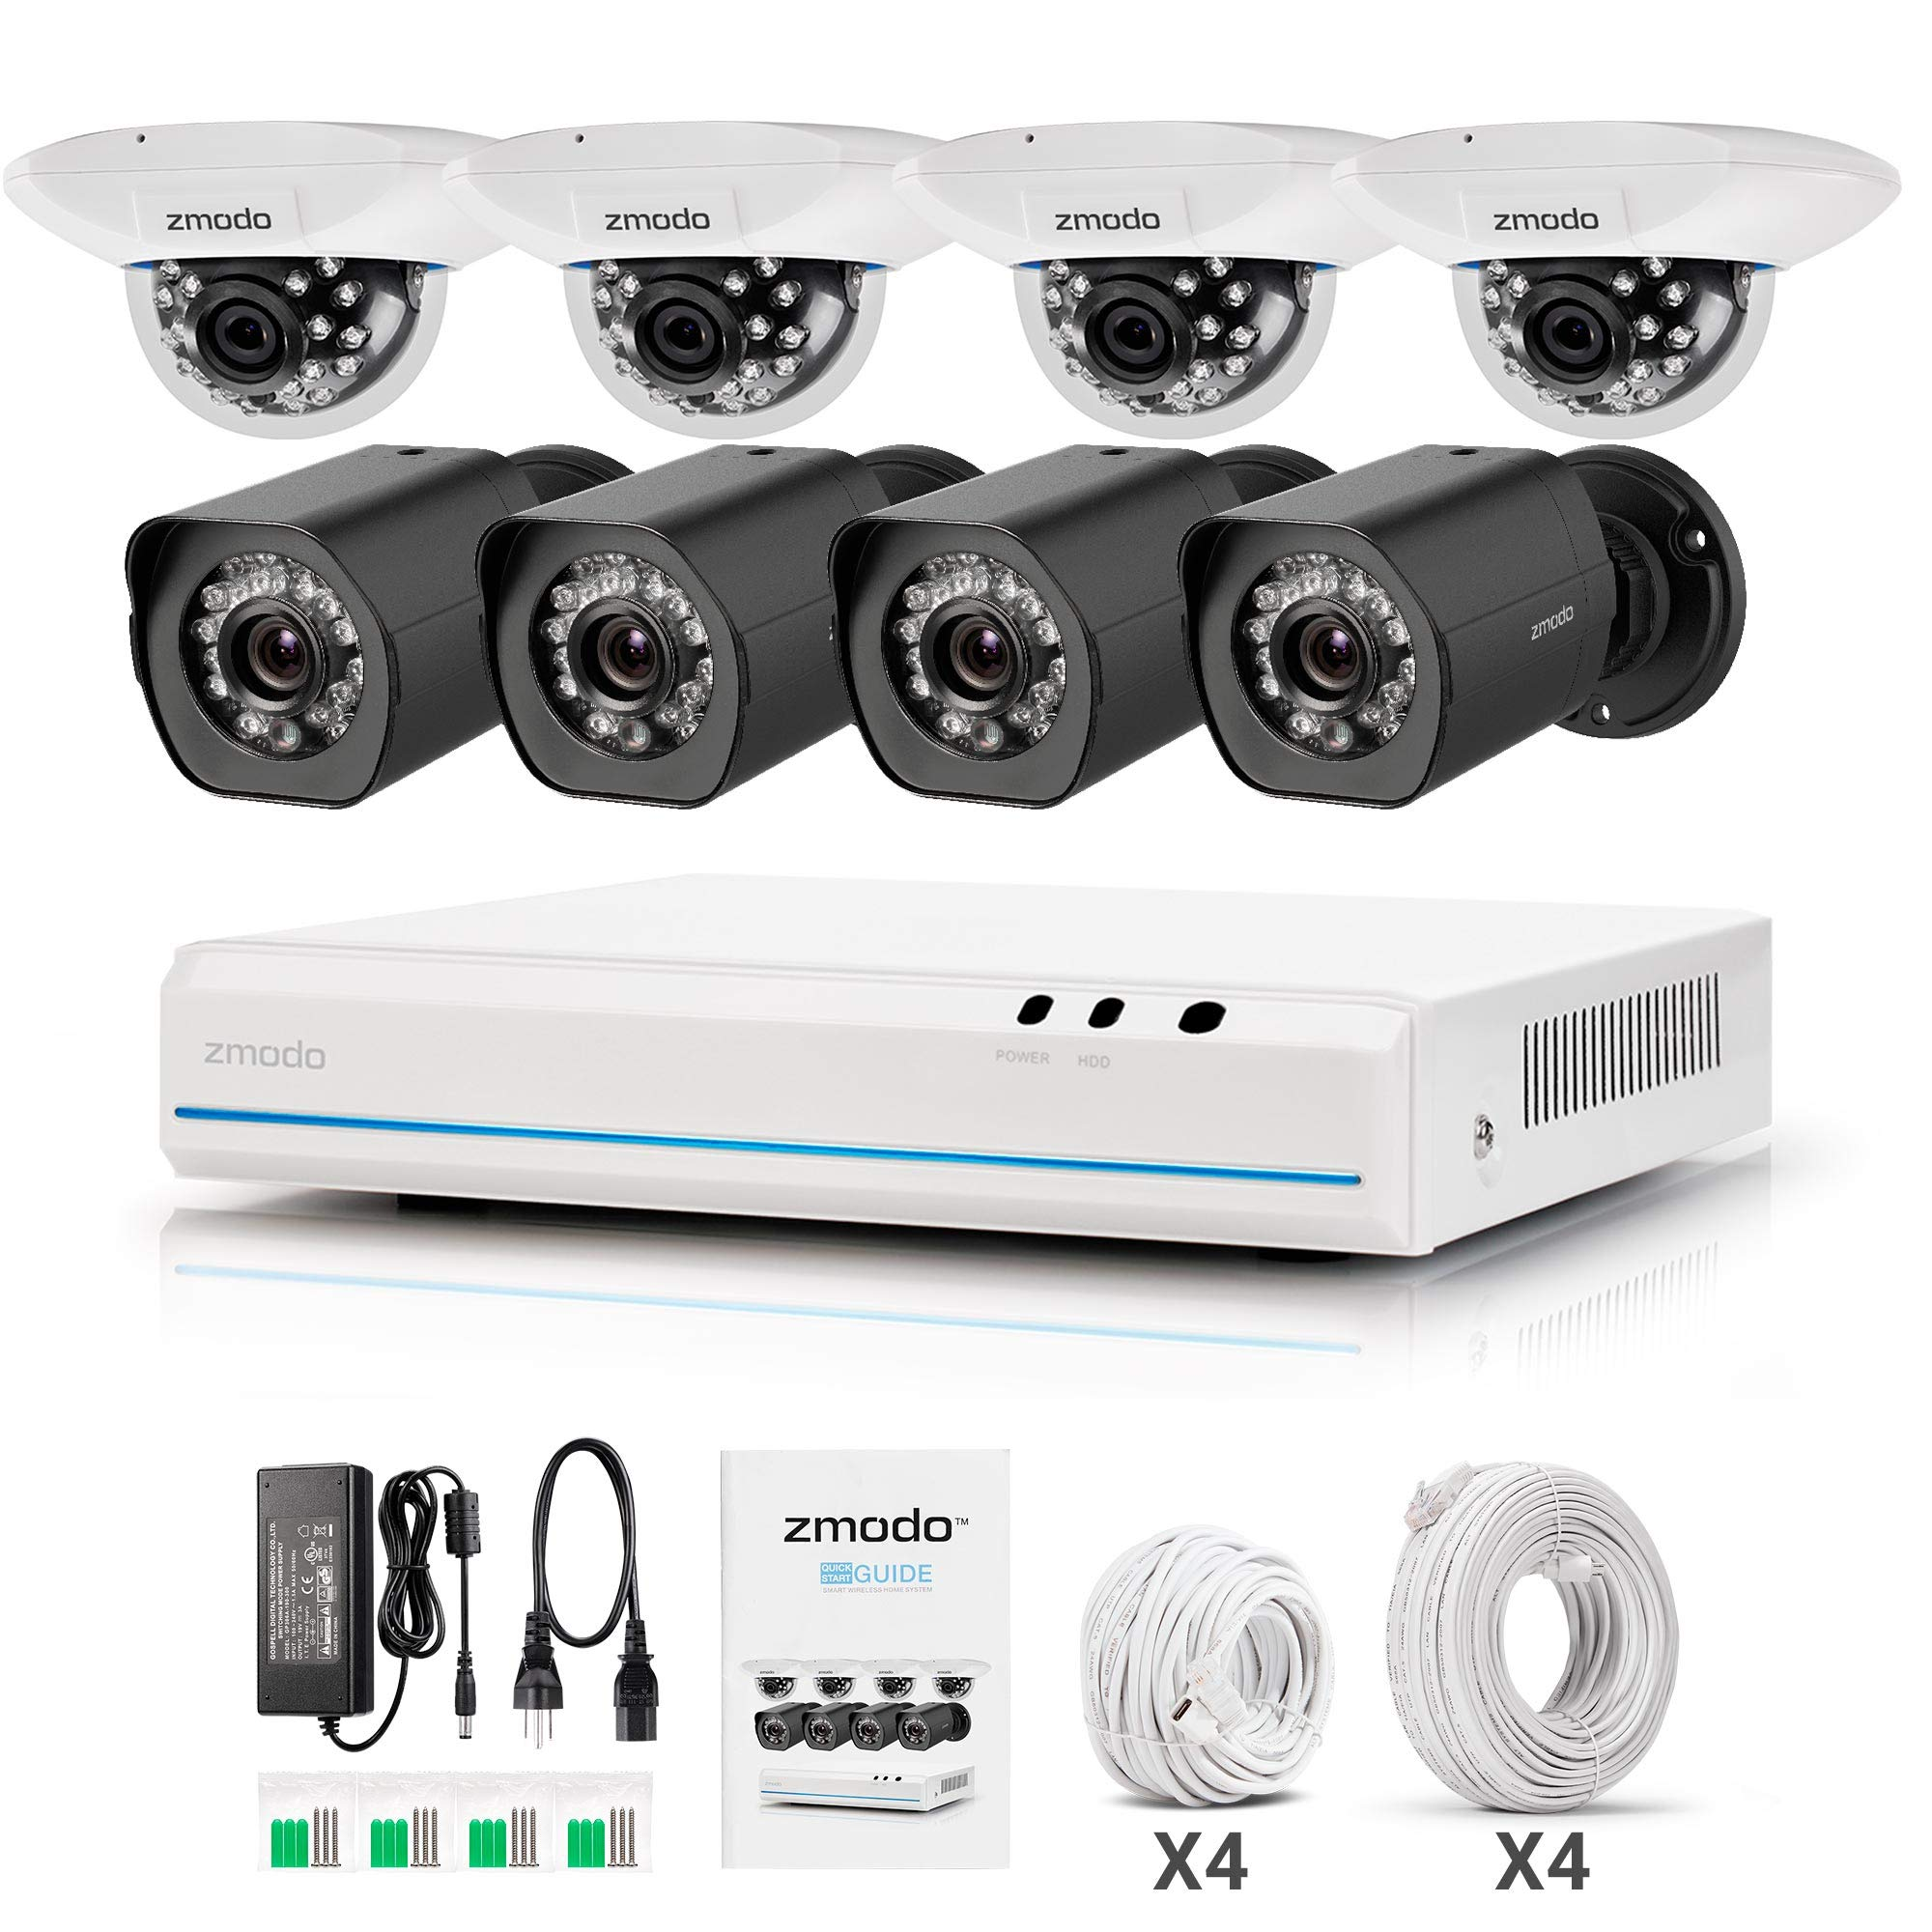 Zmodo 8 Channel NVR 720p Indoor & Outdoor Home Security Surveillance Camera System by Zmodo